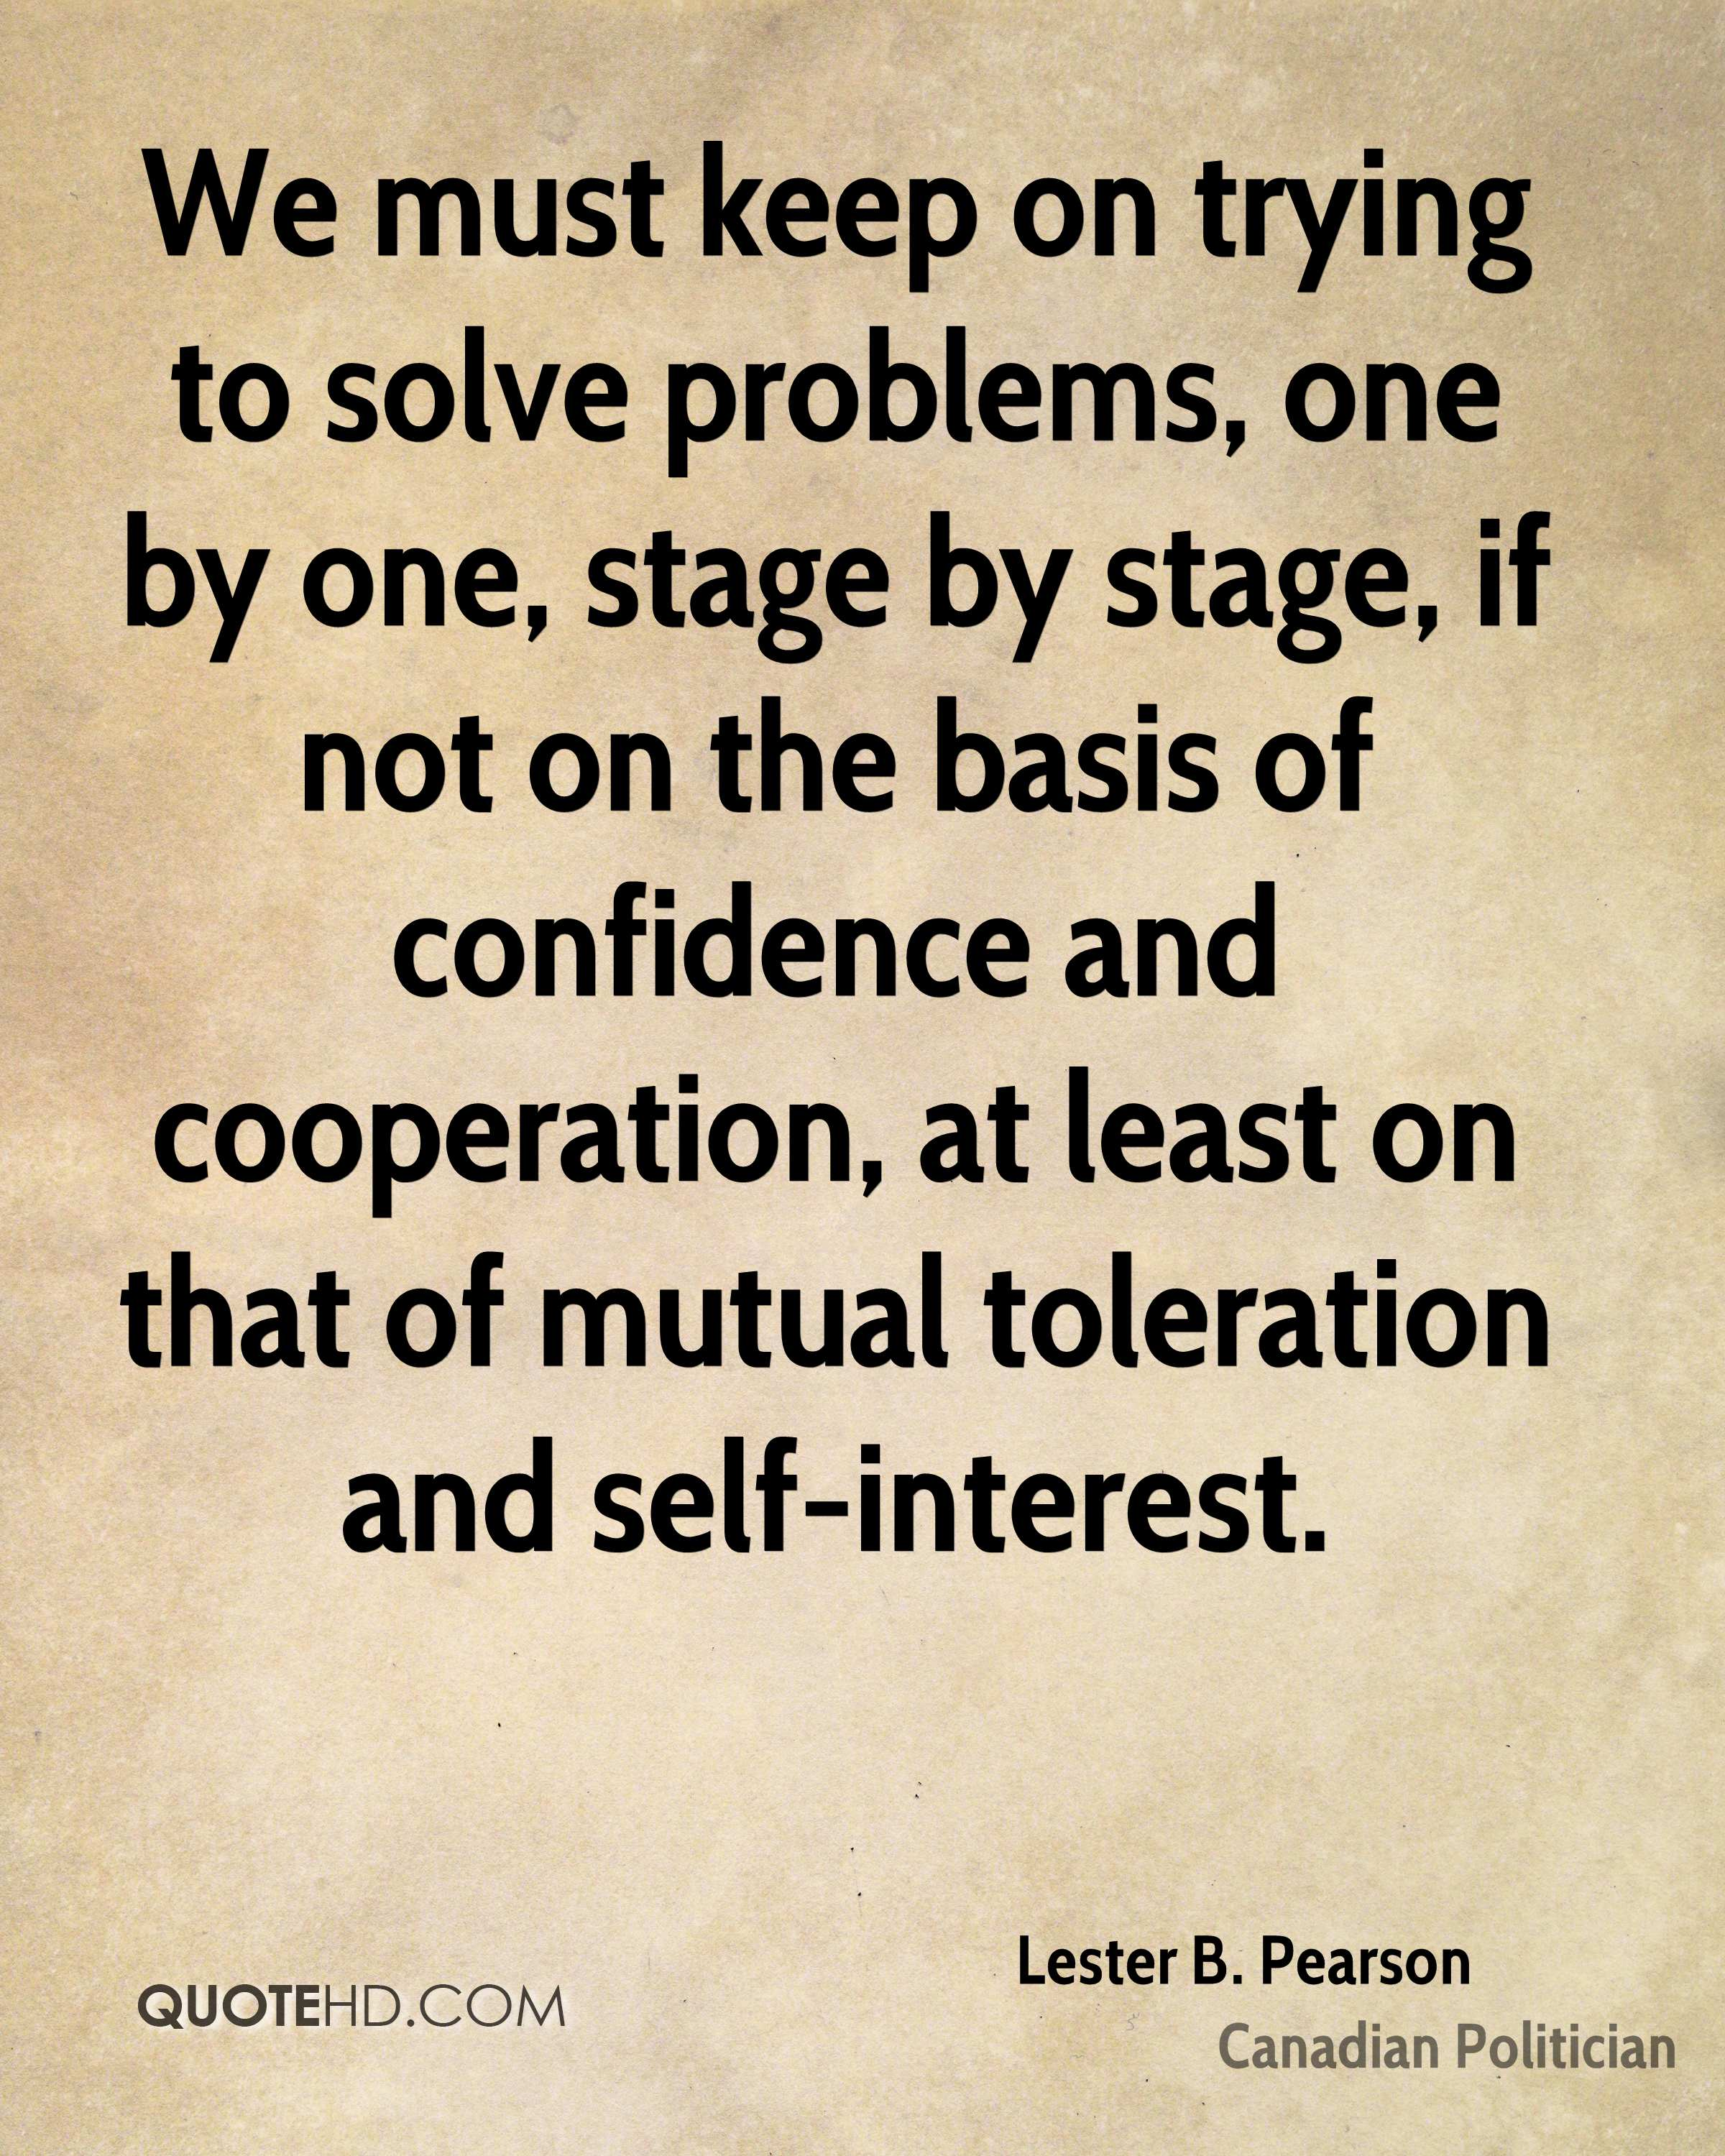 We must keep on trying to solve problems, one by one, stage by stage, if not on the basis of confidence and cooperation, at least on that of mutual toleration and self-interest.